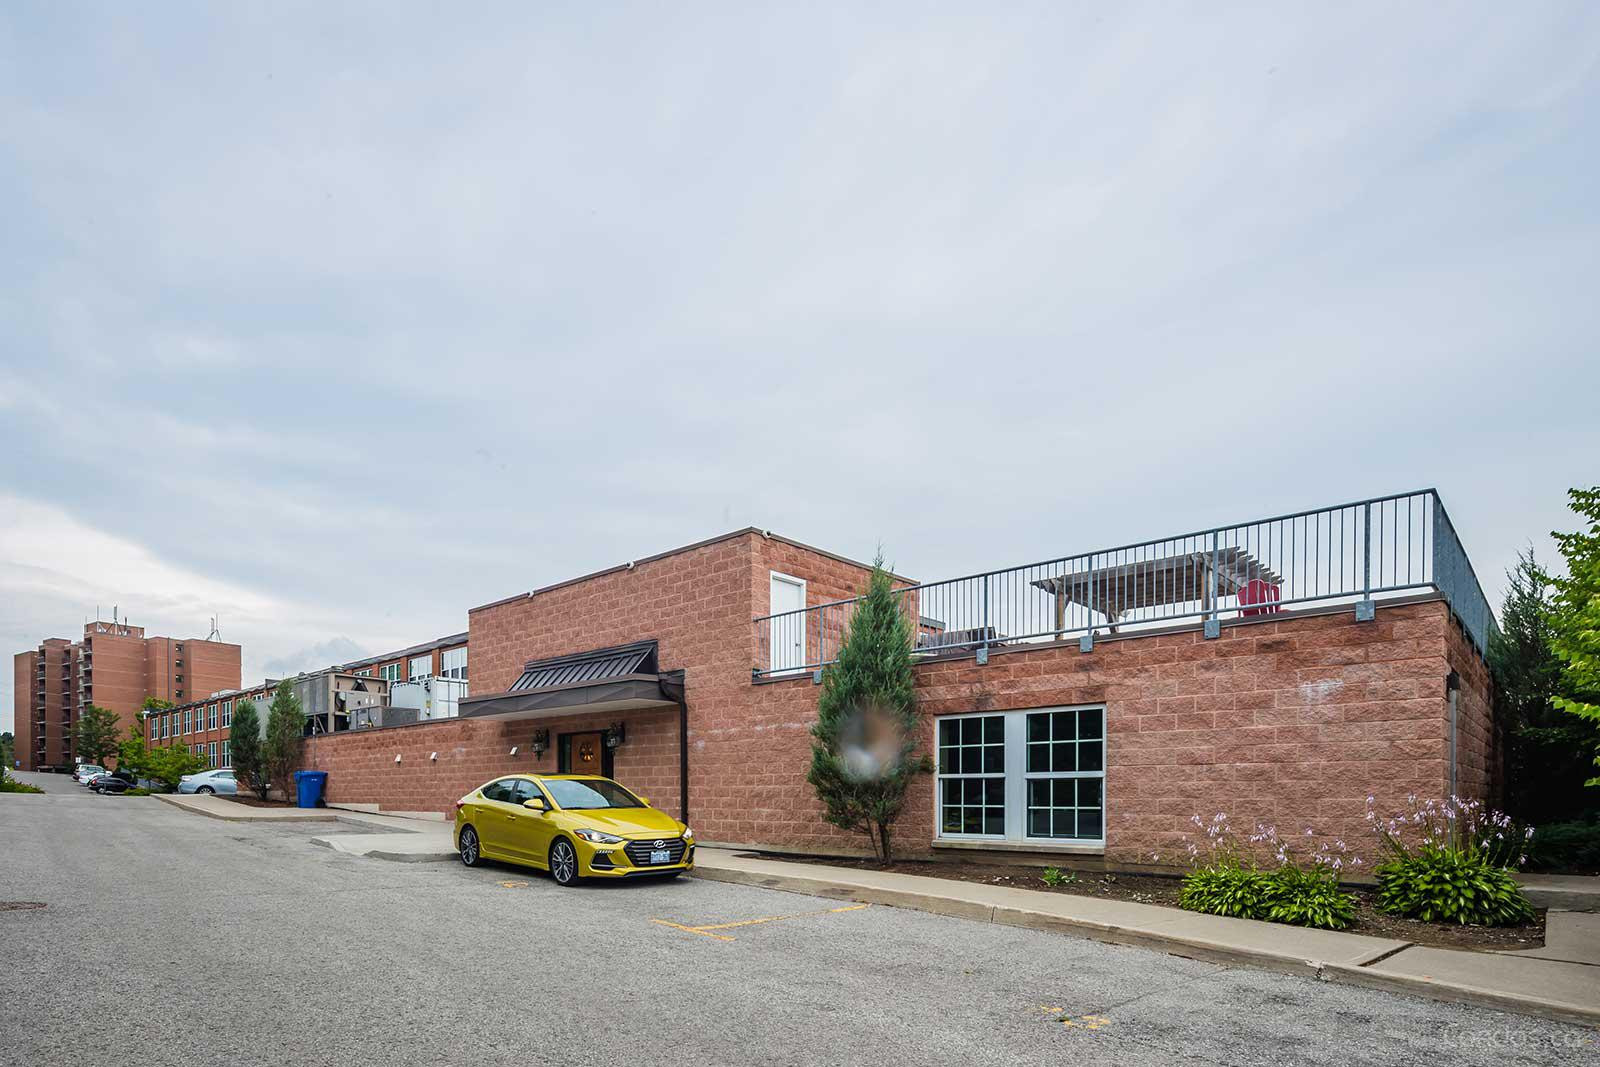 Specialty Lofts at 543 Timothy St, Newmarket 0